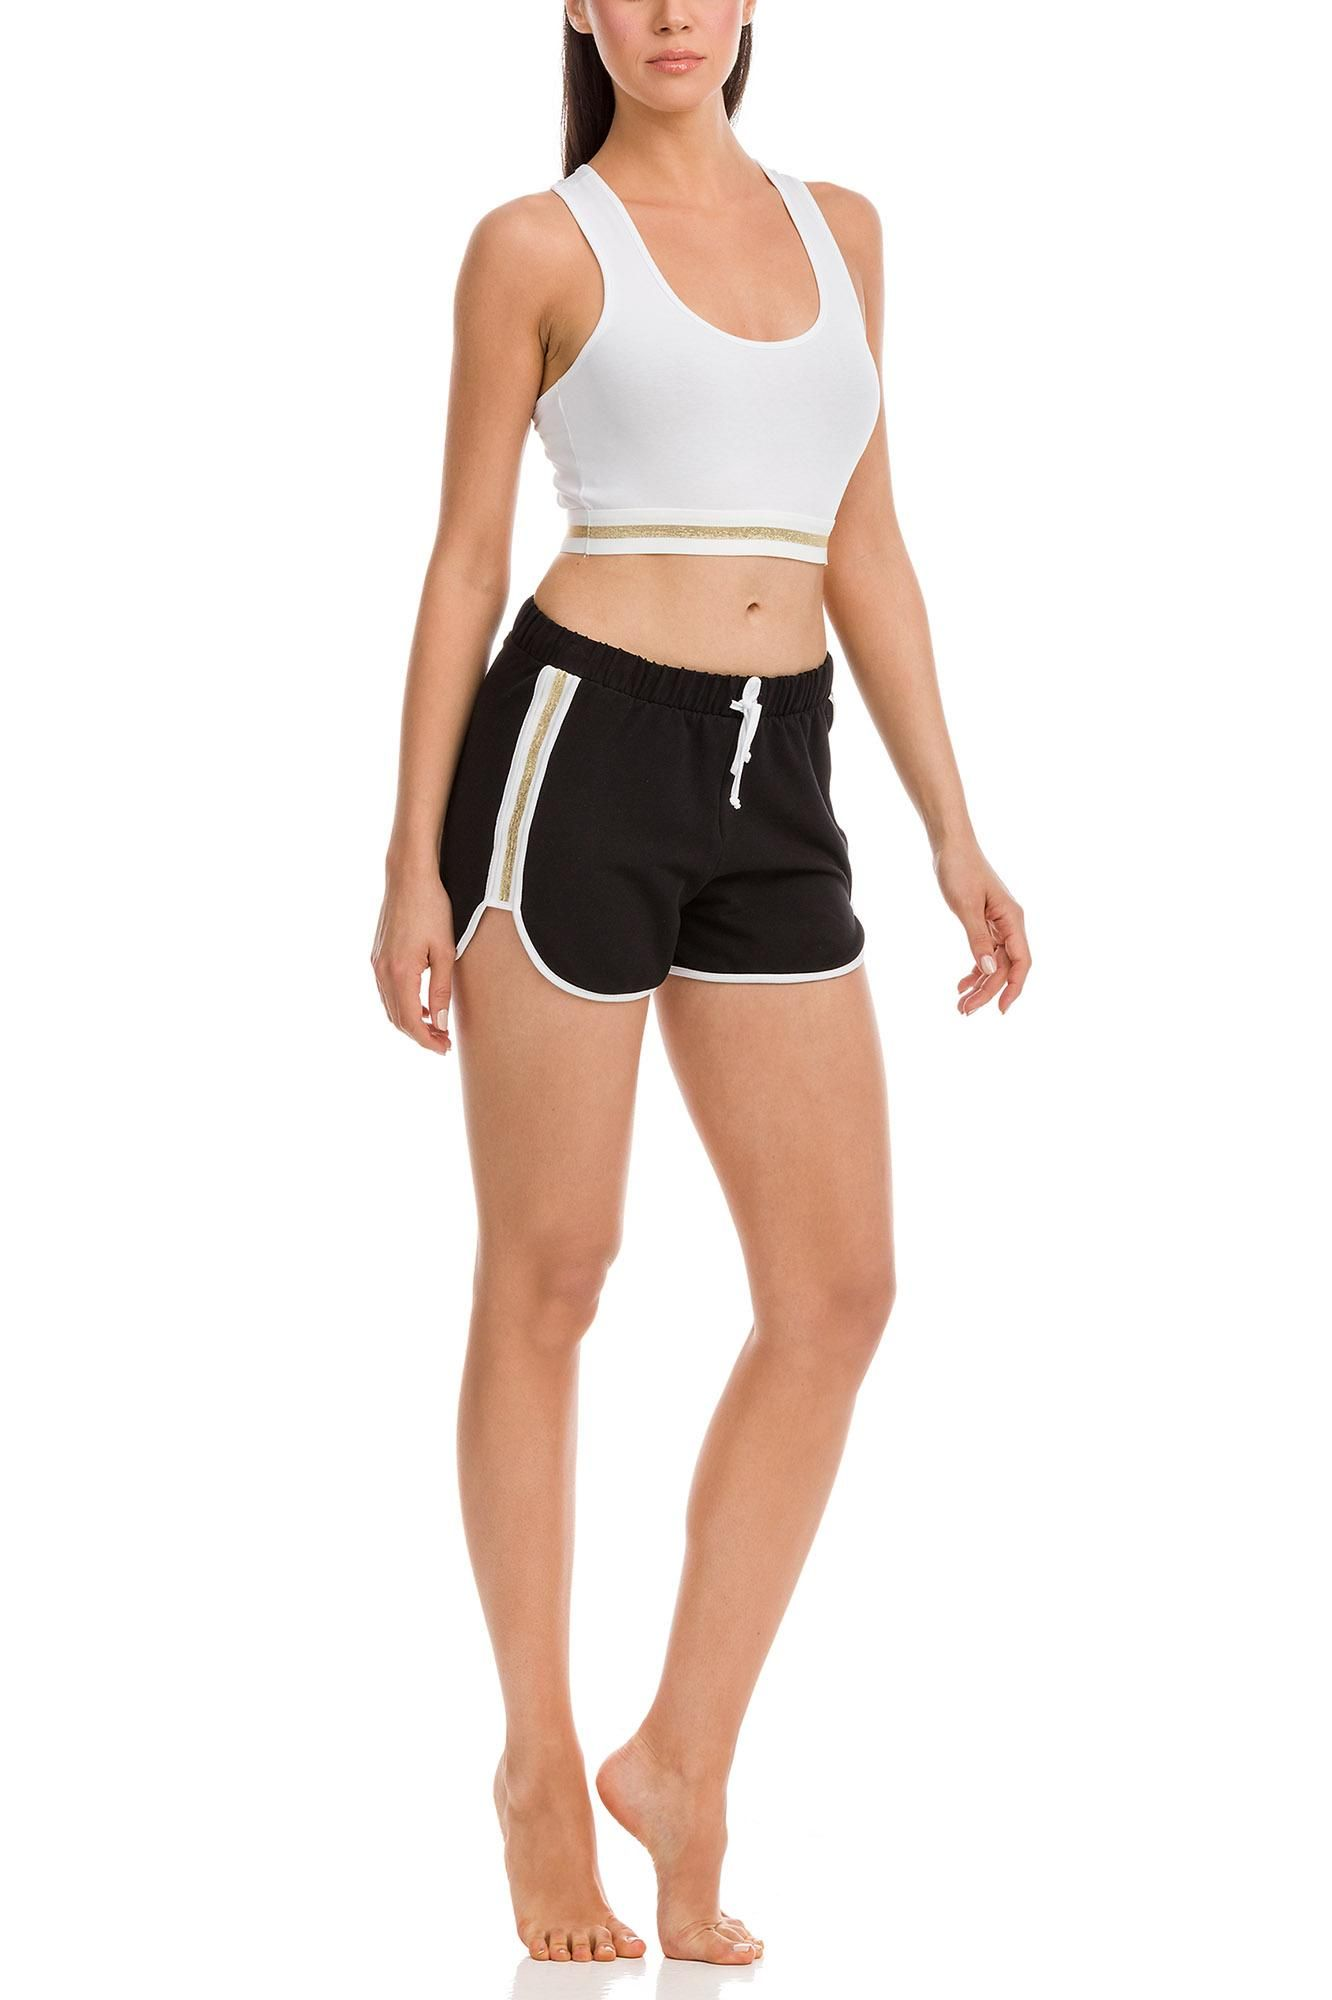 Women's Cropped Top